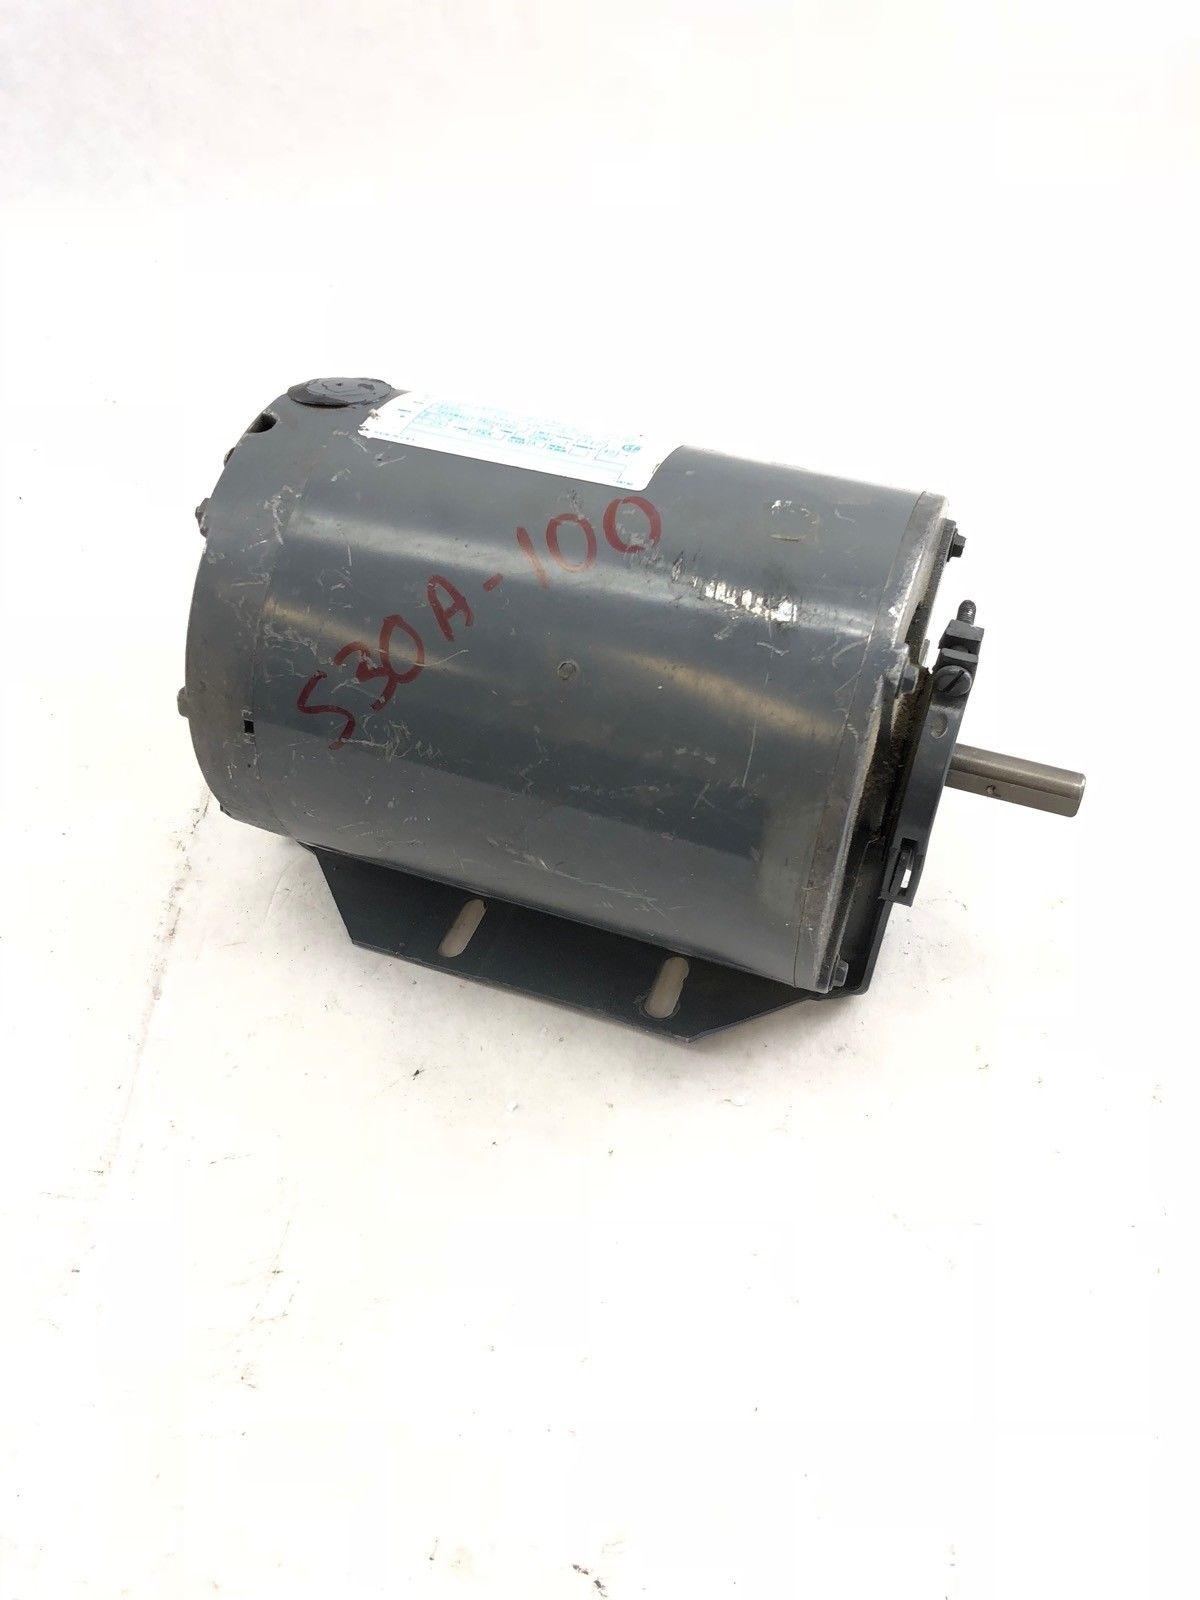 USED GOULD 7-1513 43-01 CENTURY 1/2 HP MOTOR, L48 FRAME, 3450 RPM, (B427) 1